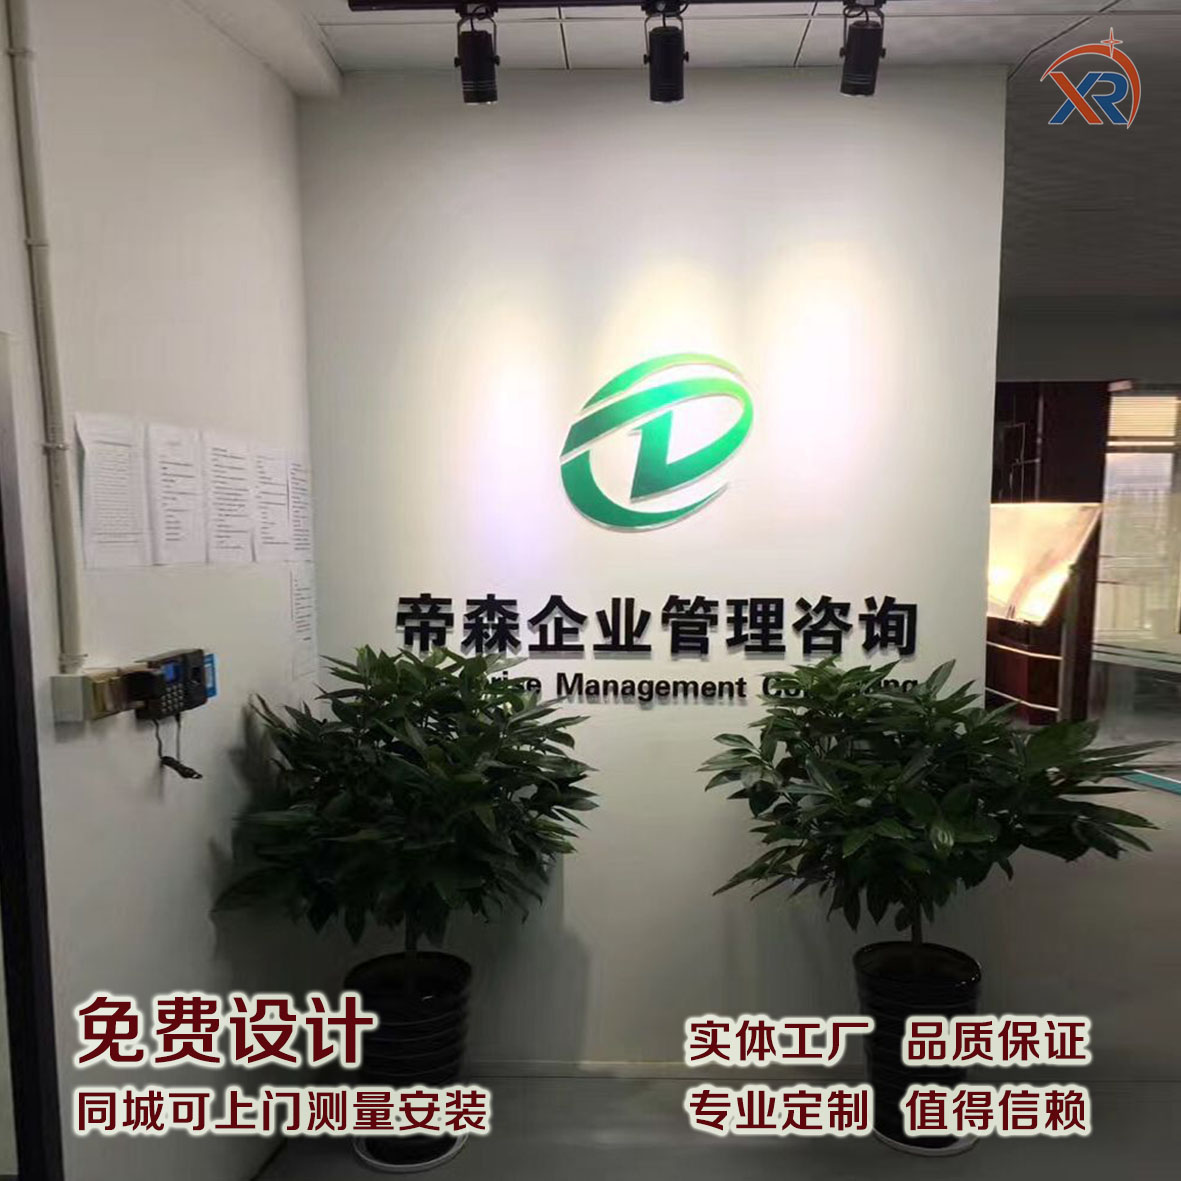 Company Logo Making Image Wall Background Plate Acrylic Word Crystal Foreground Signboard Design